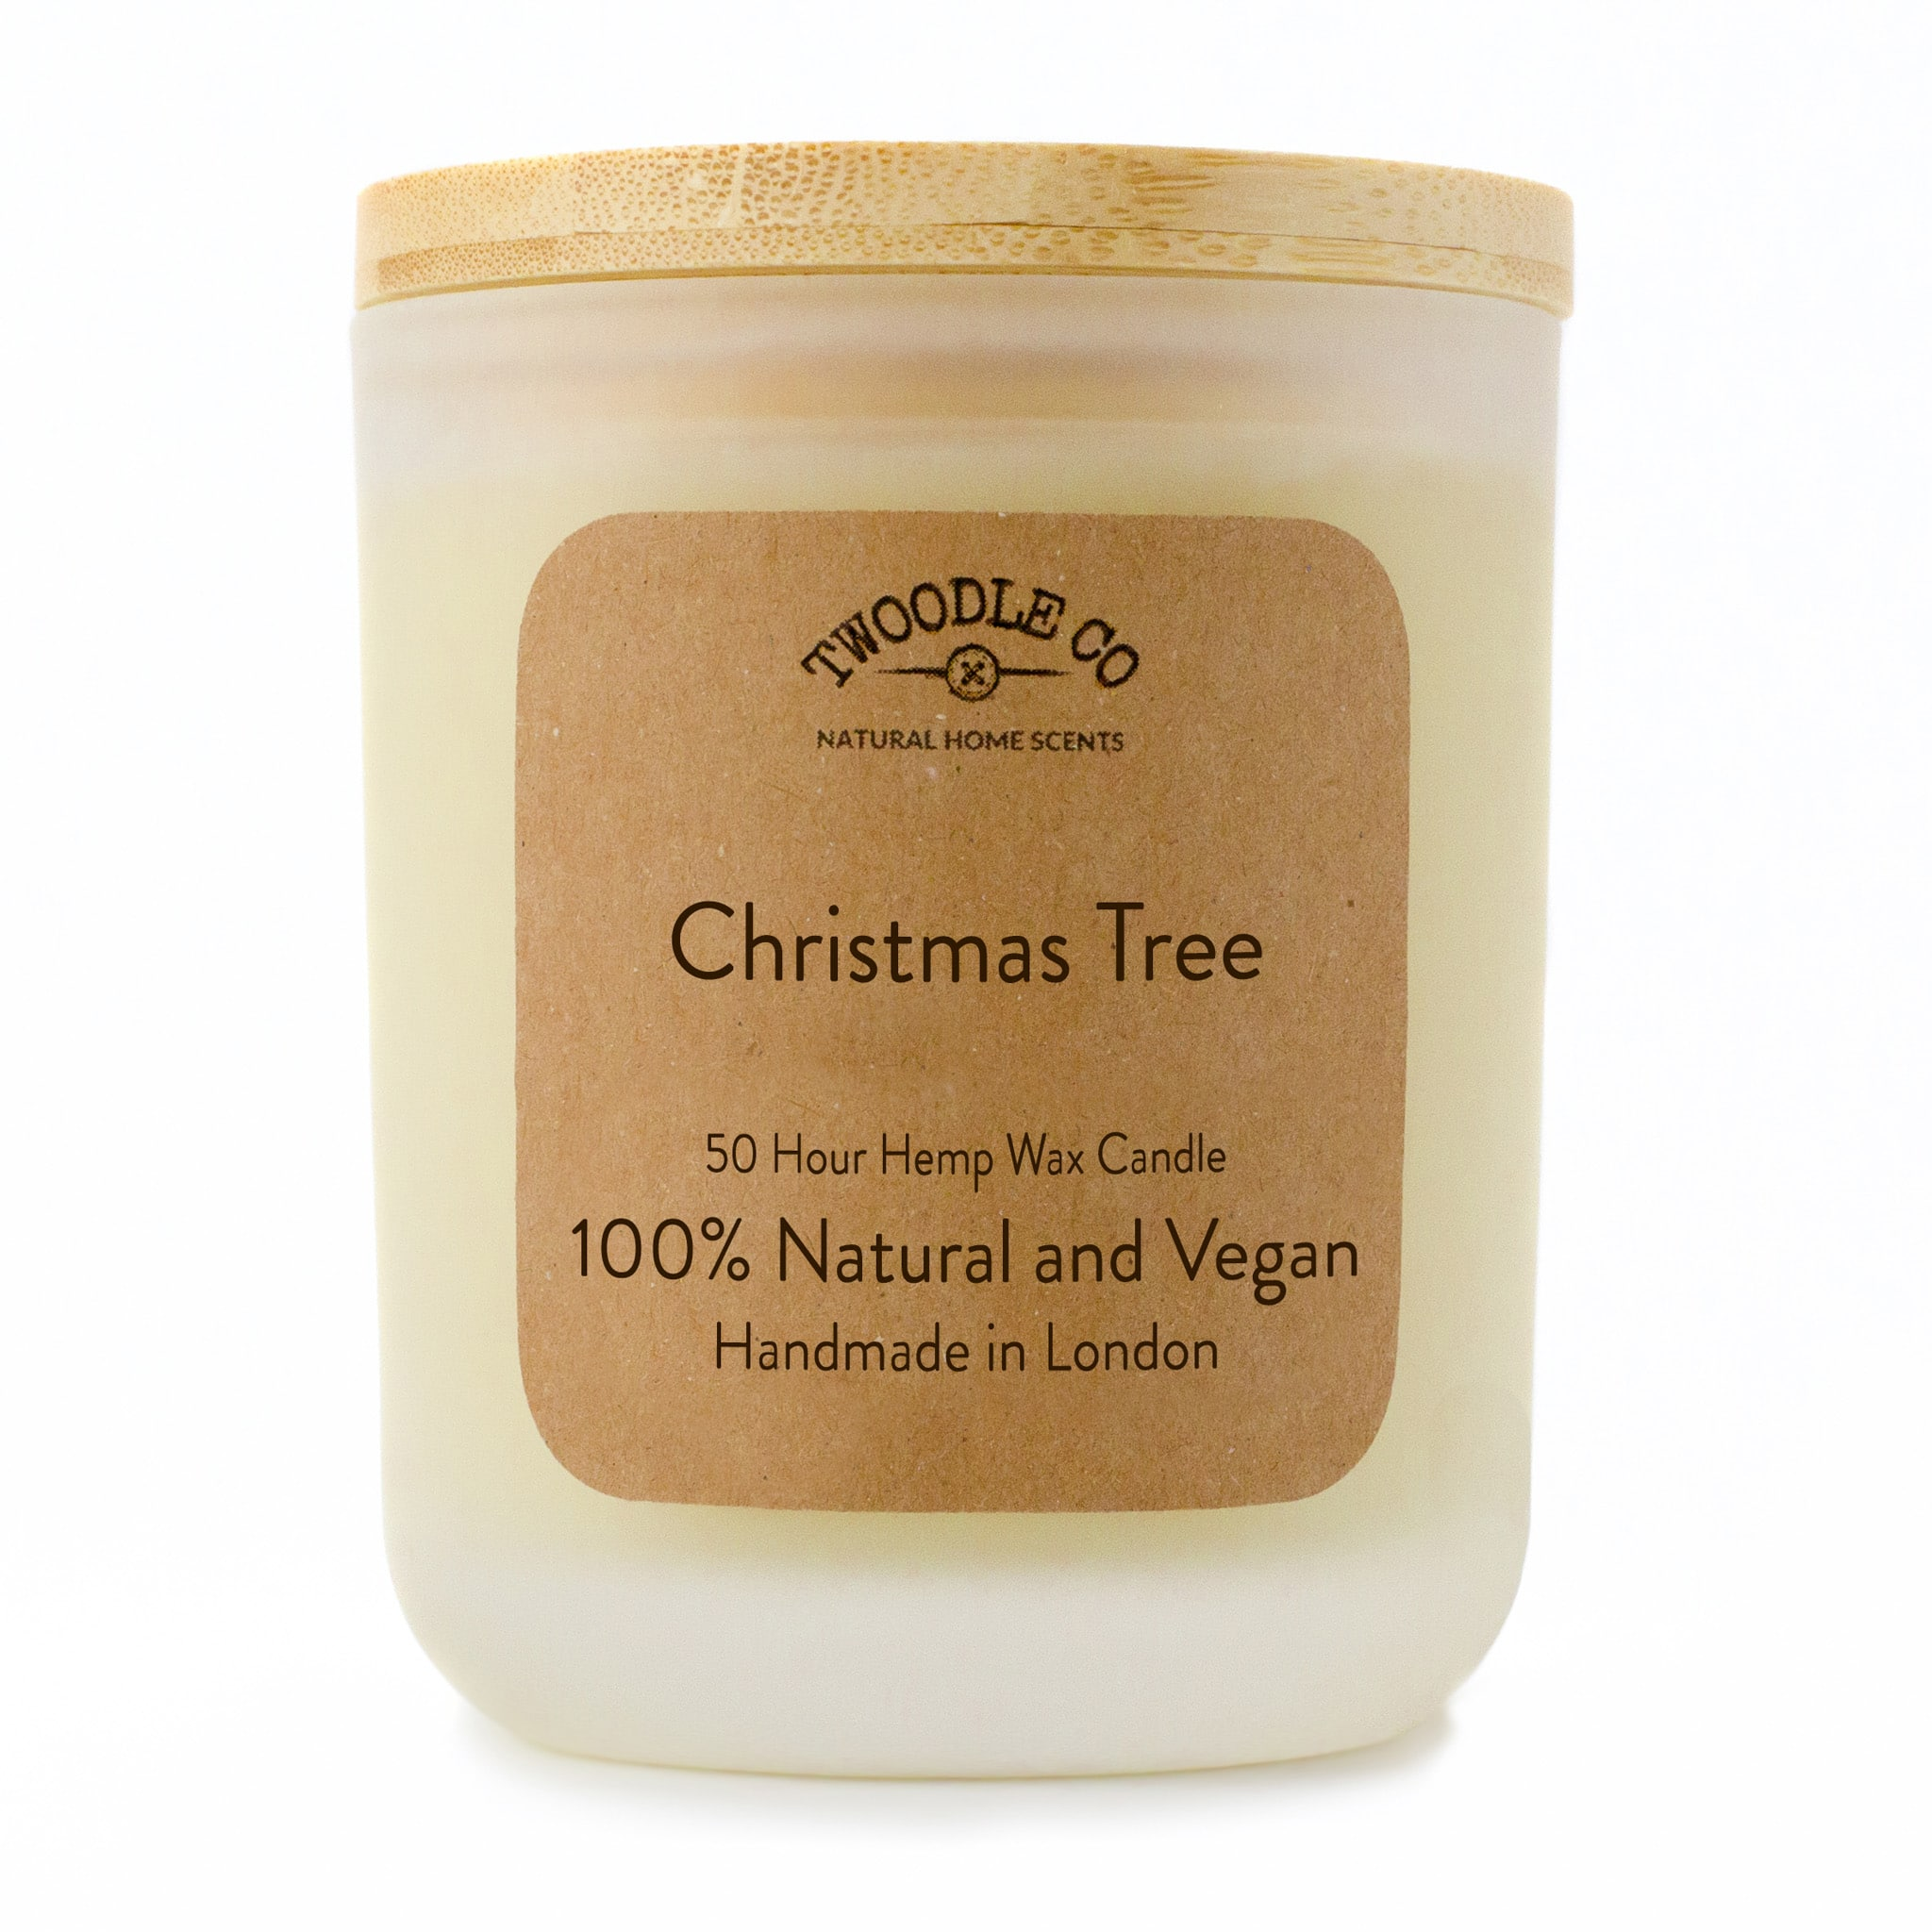 Twoodle Co Medium Scented Candle Christmas Tree